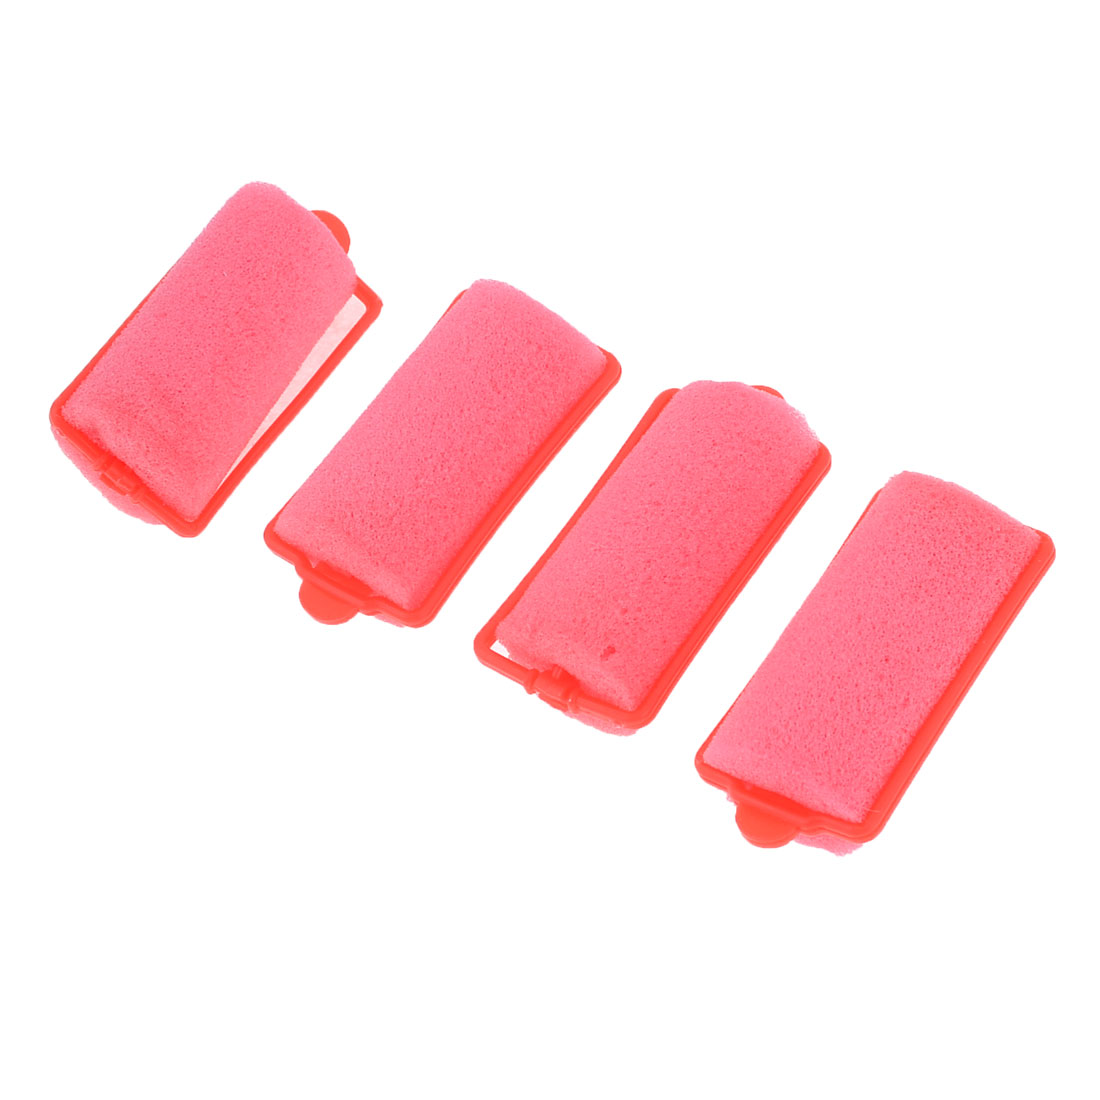 4 Pcs Watermelon Red Sponge Curly Hairstyle DIY Hair Roller Curler